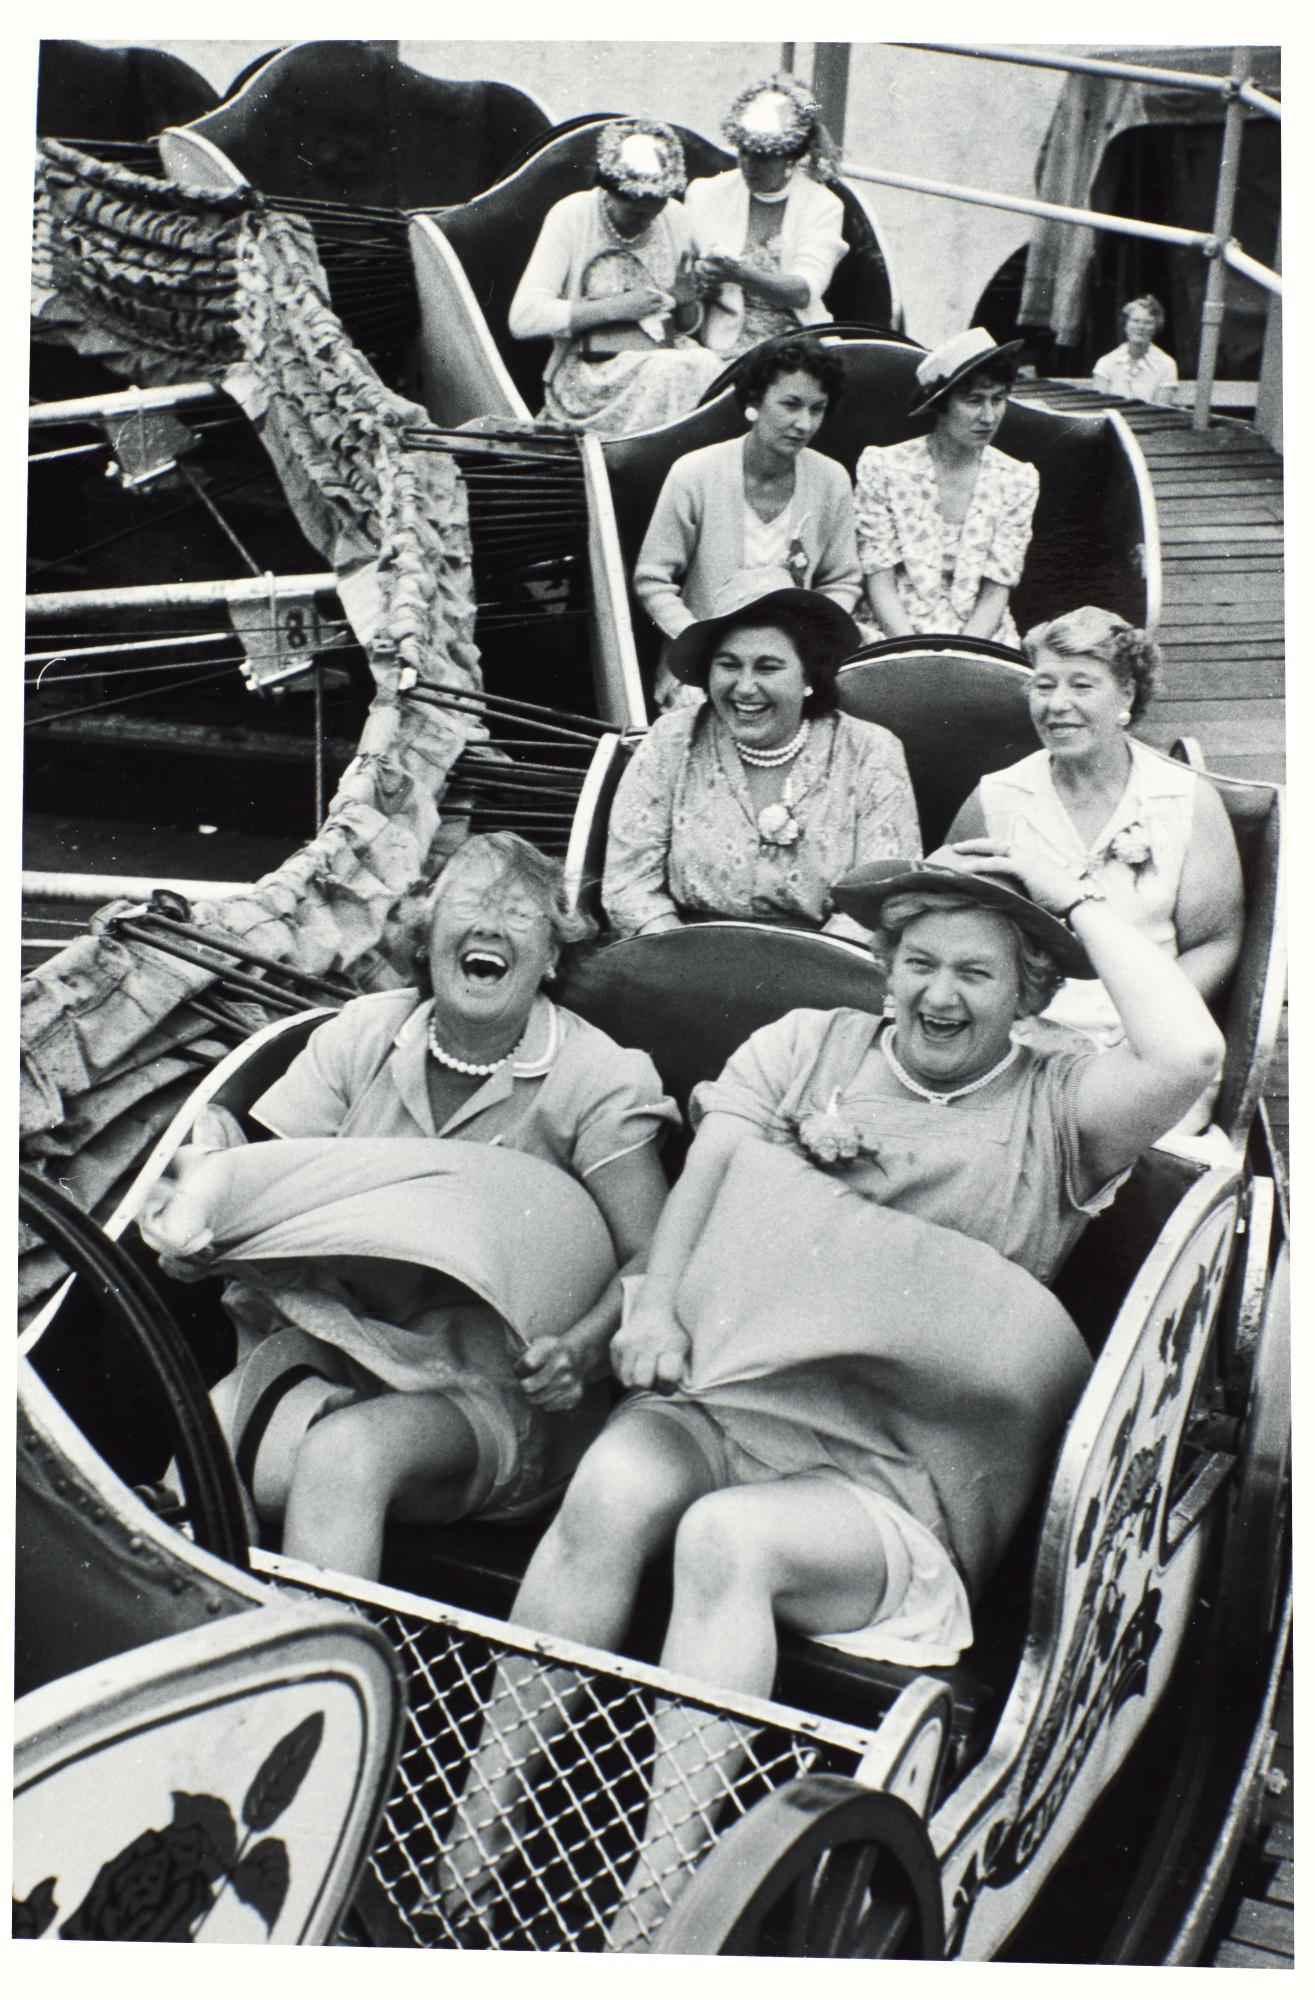 GRACE ROBERTSON | ON THE CATERPILLAR, WOMEN'S PUB OUTING, CLAPHAM, LONDON, 1956